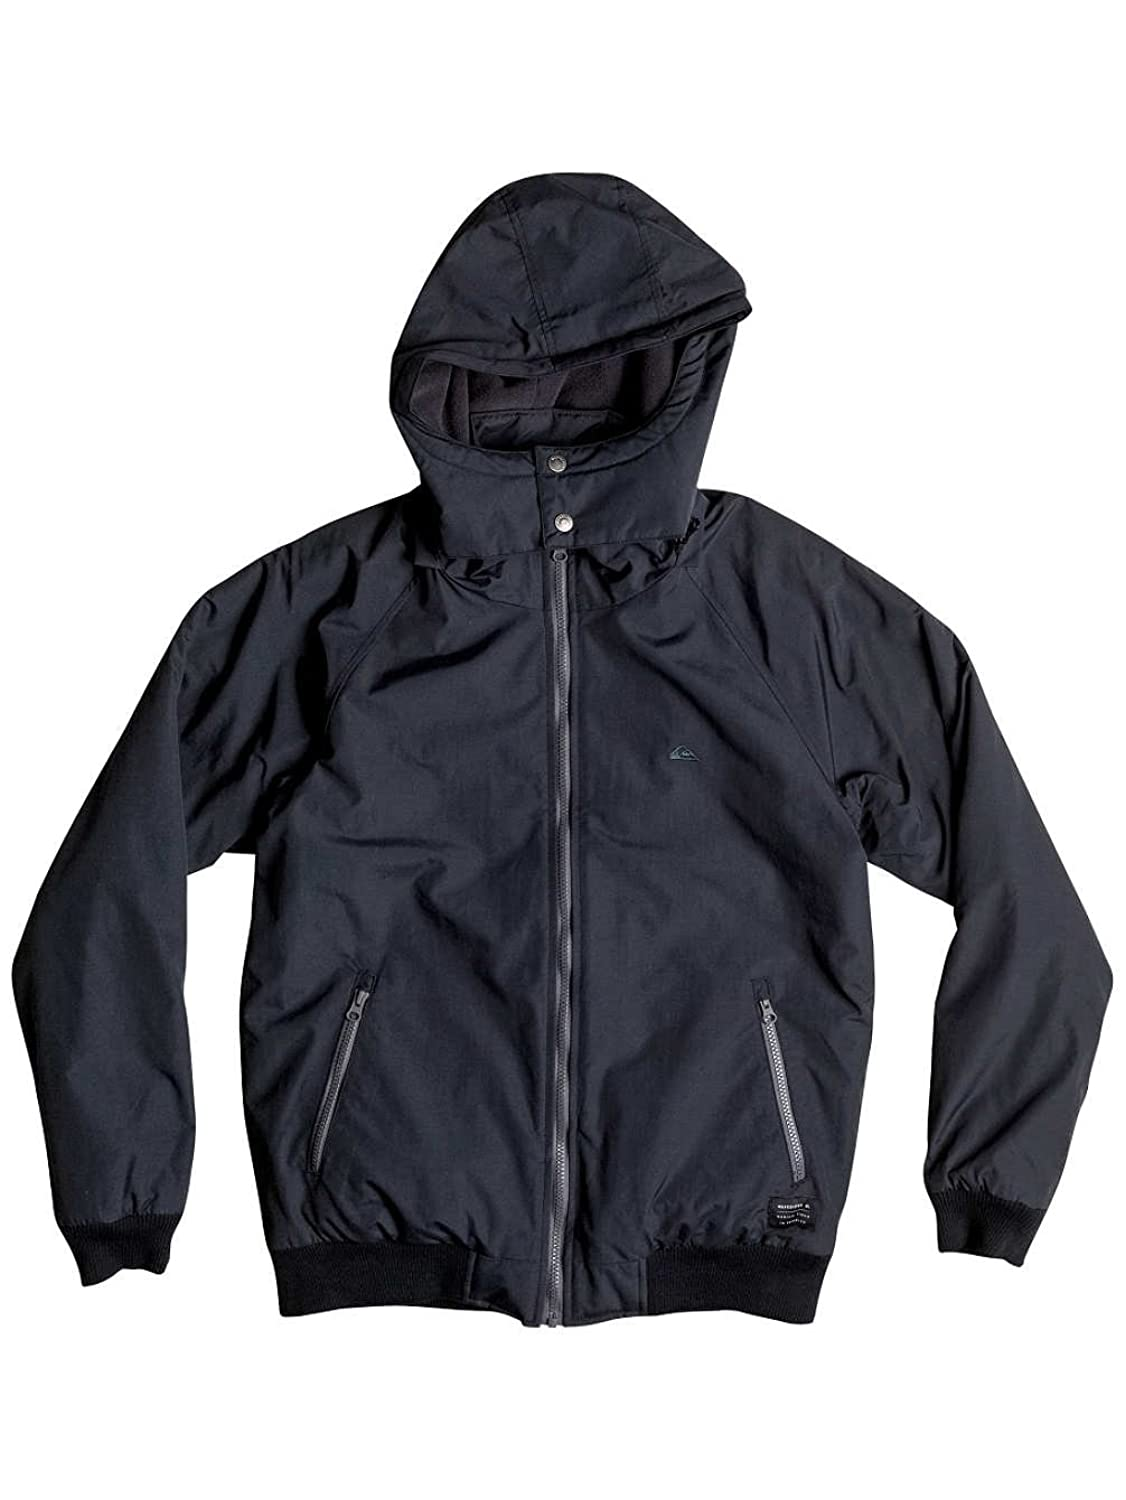 Quiksilver Black Out The Back Jacket